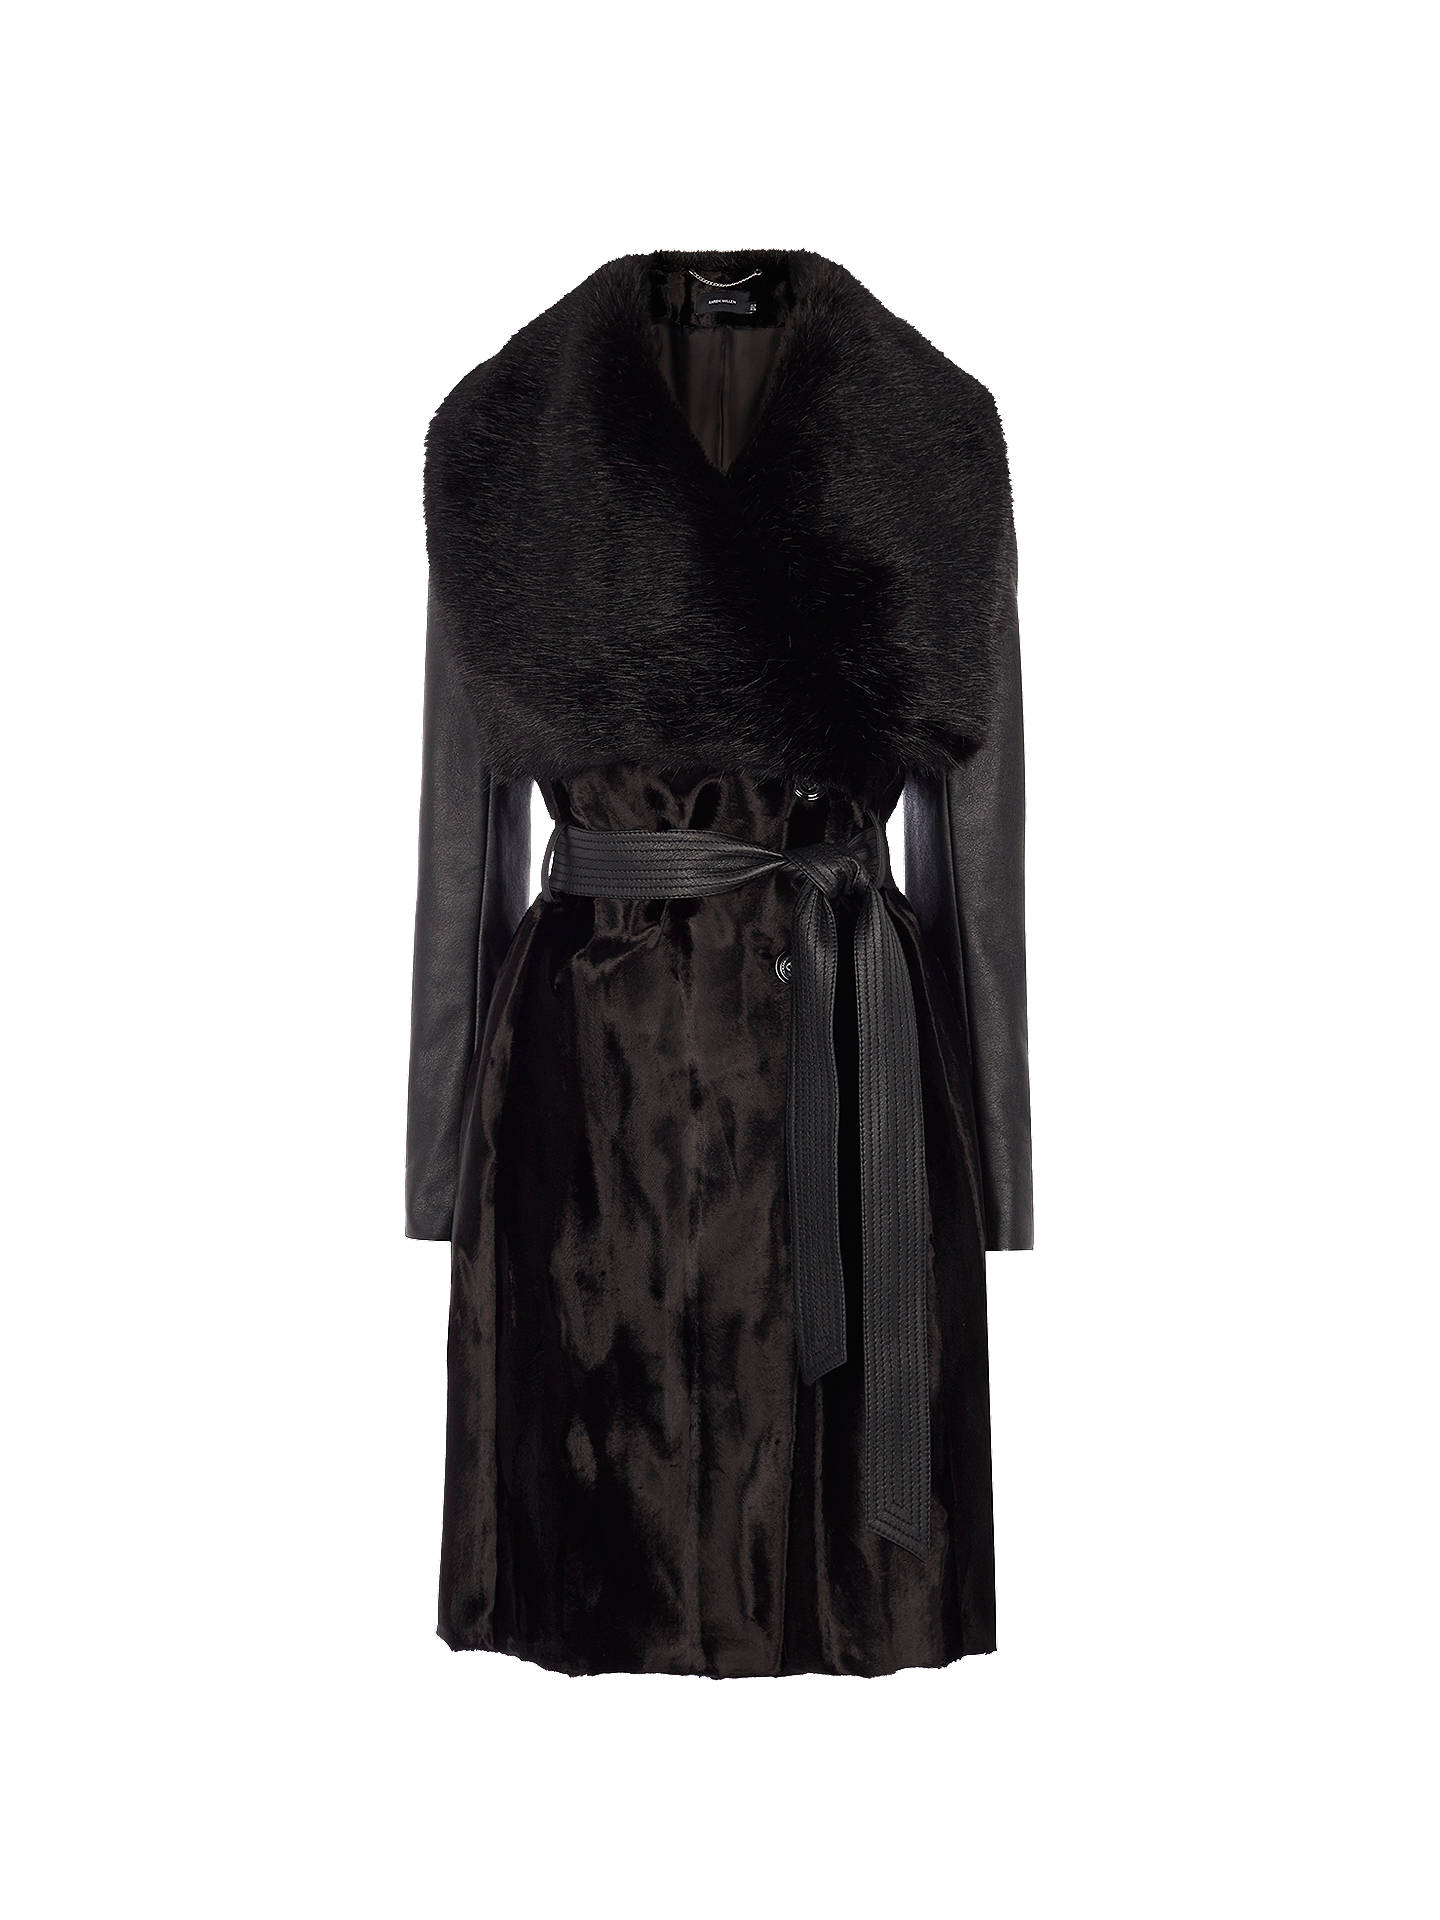 unique design outlet sale yet not vulgar Karen Millen Signature Investment Coat, Black at John Lewis ...